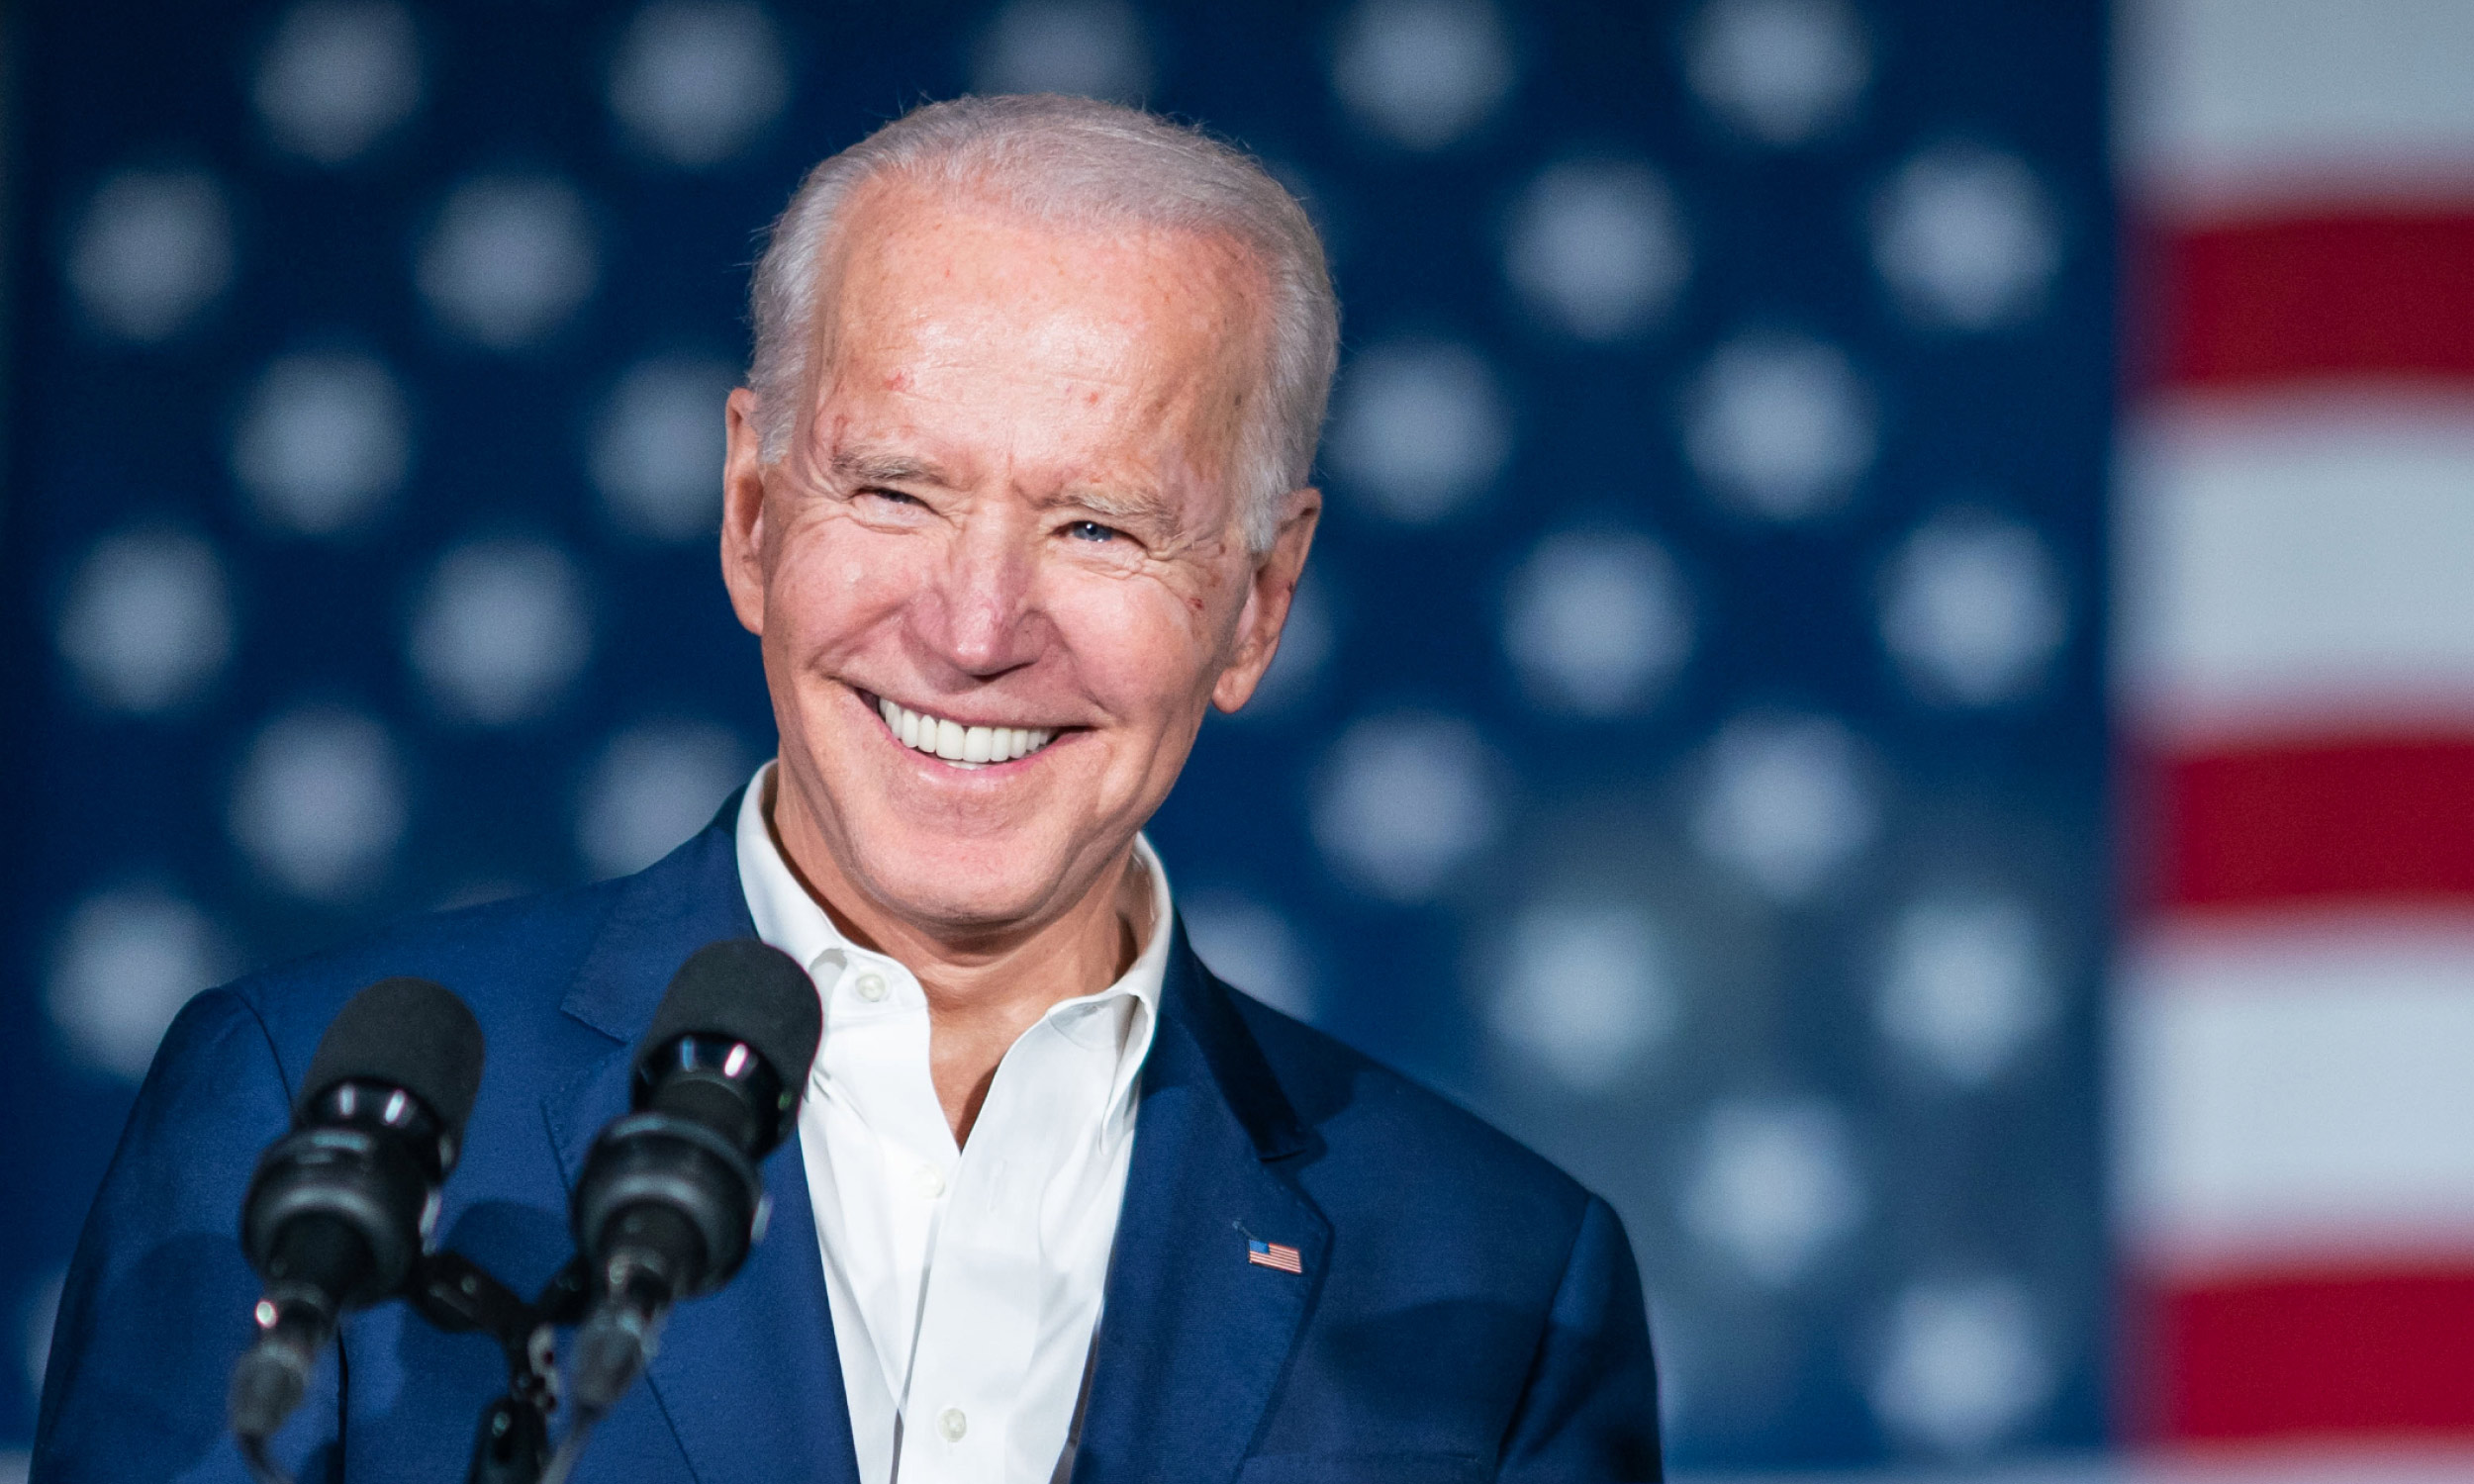 What will President Biden do about affordable housing in his first 100 days?